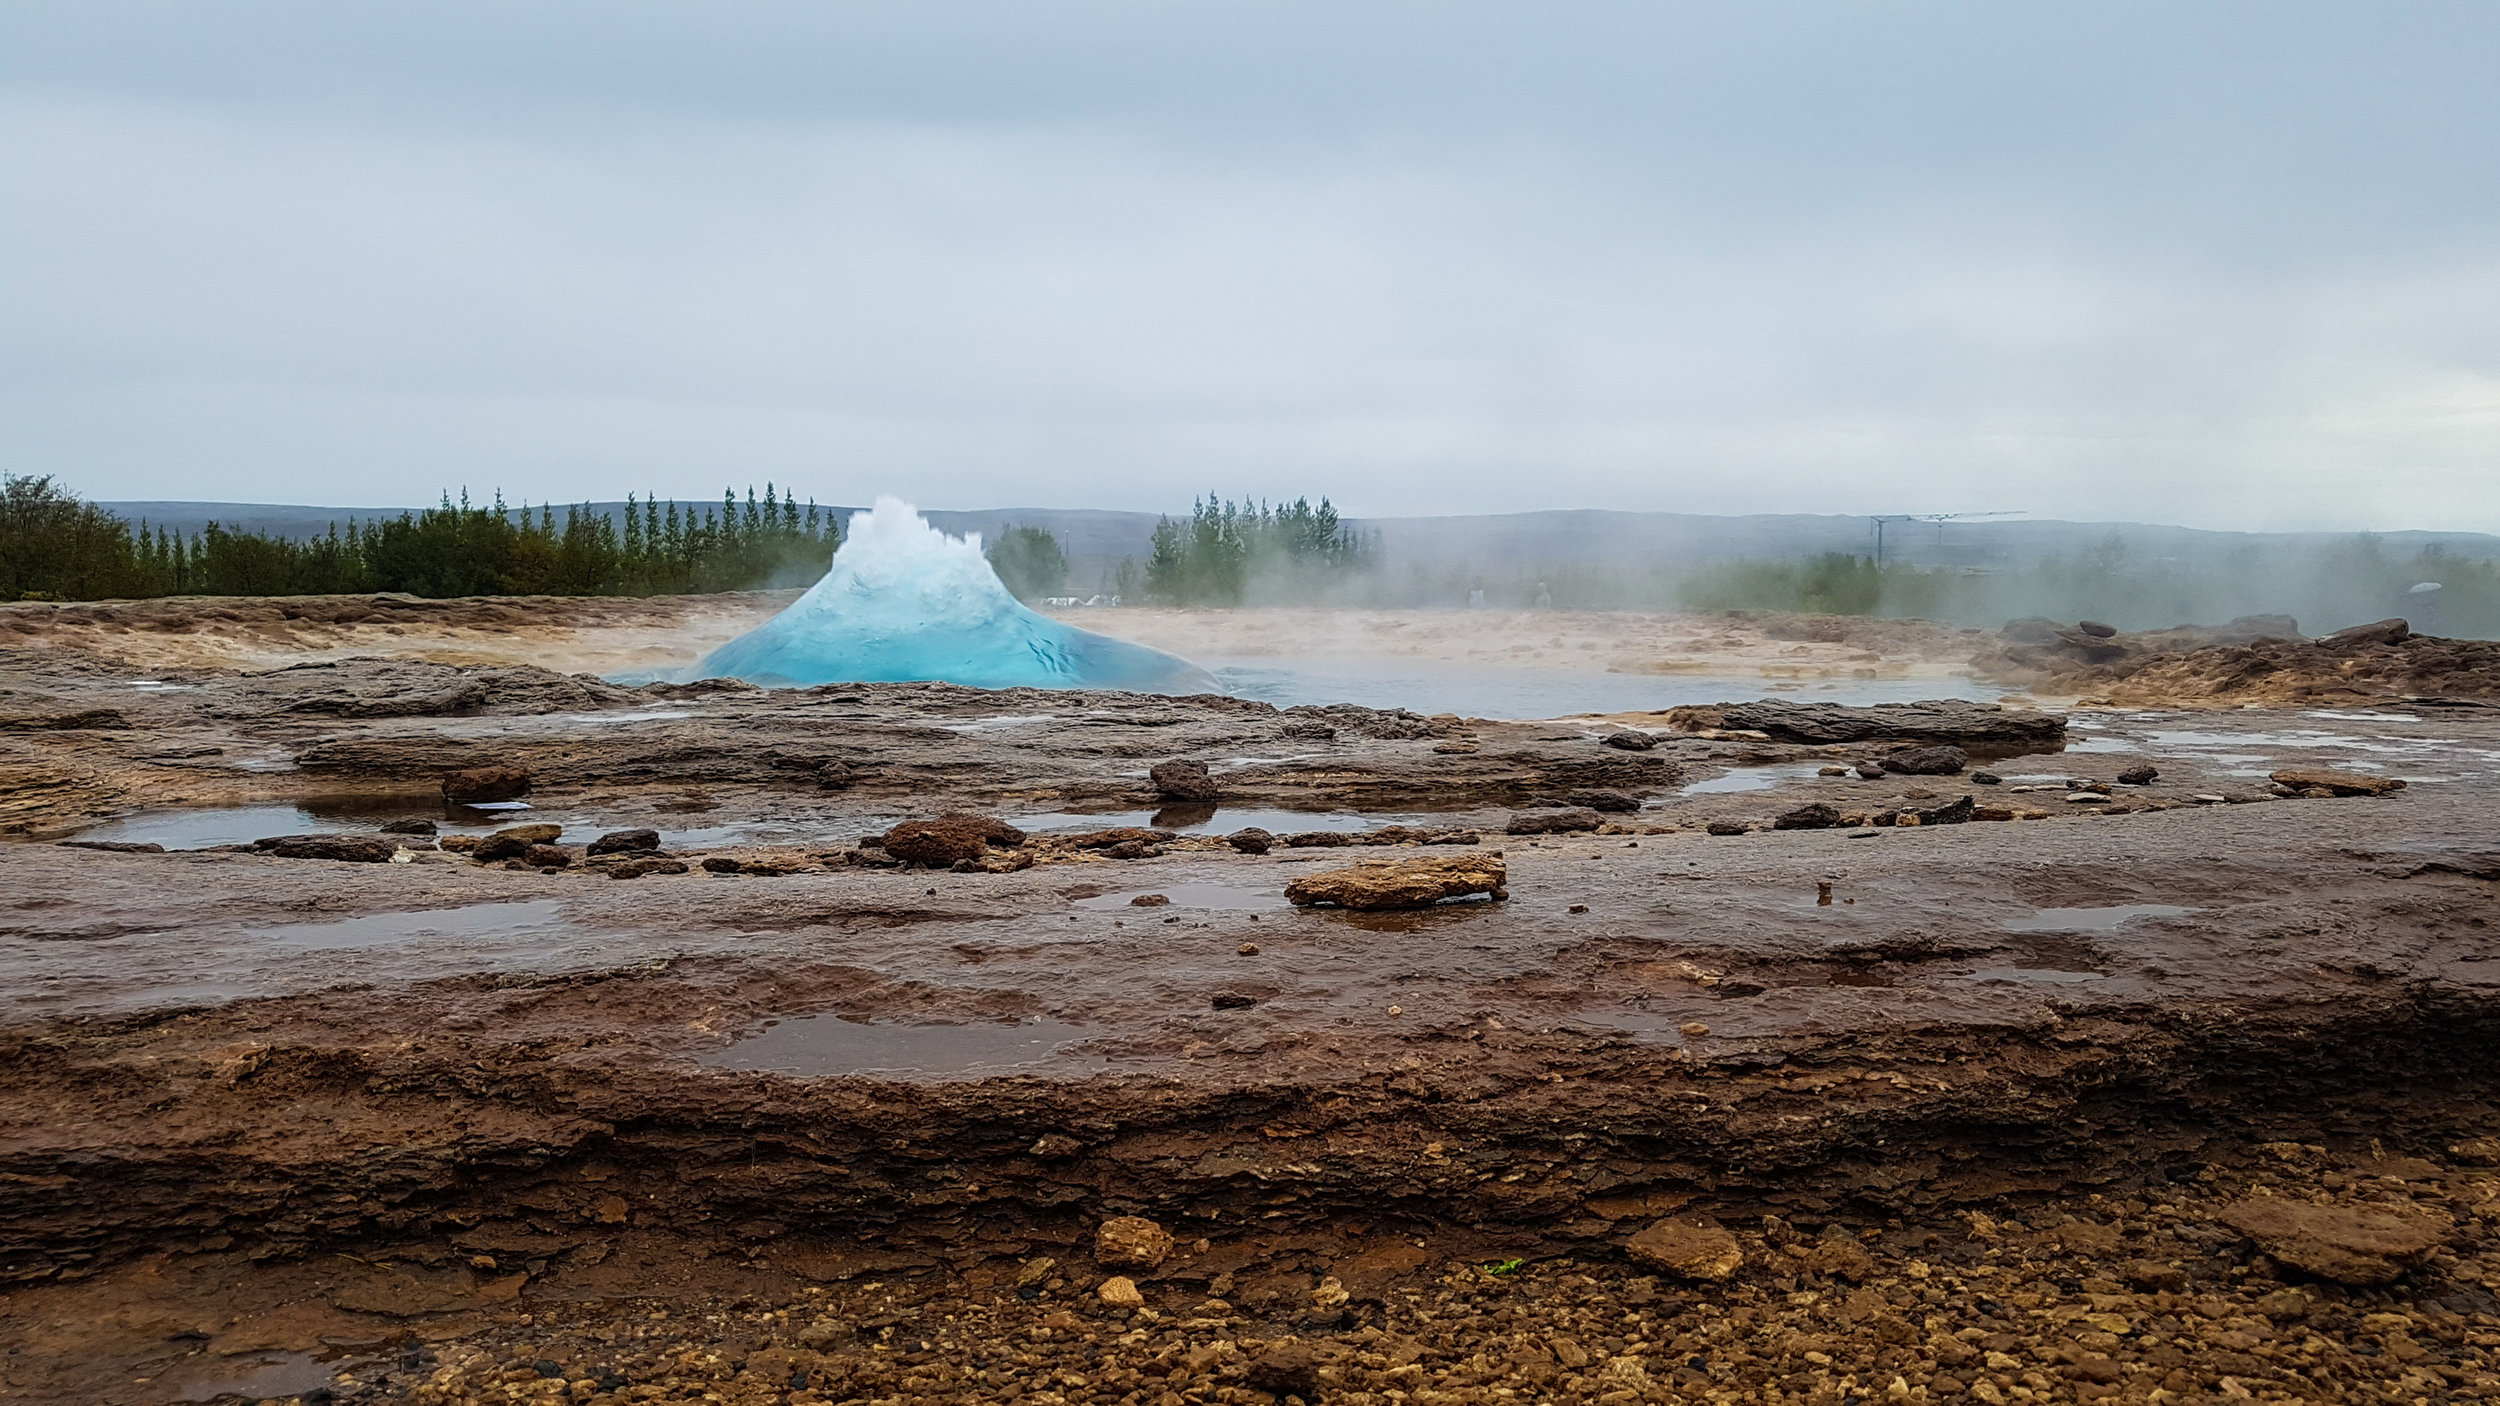 Geysir  surroundings      -  sometimes known as The Great Geysir, is a  geyser  in southwestern  Iceland .